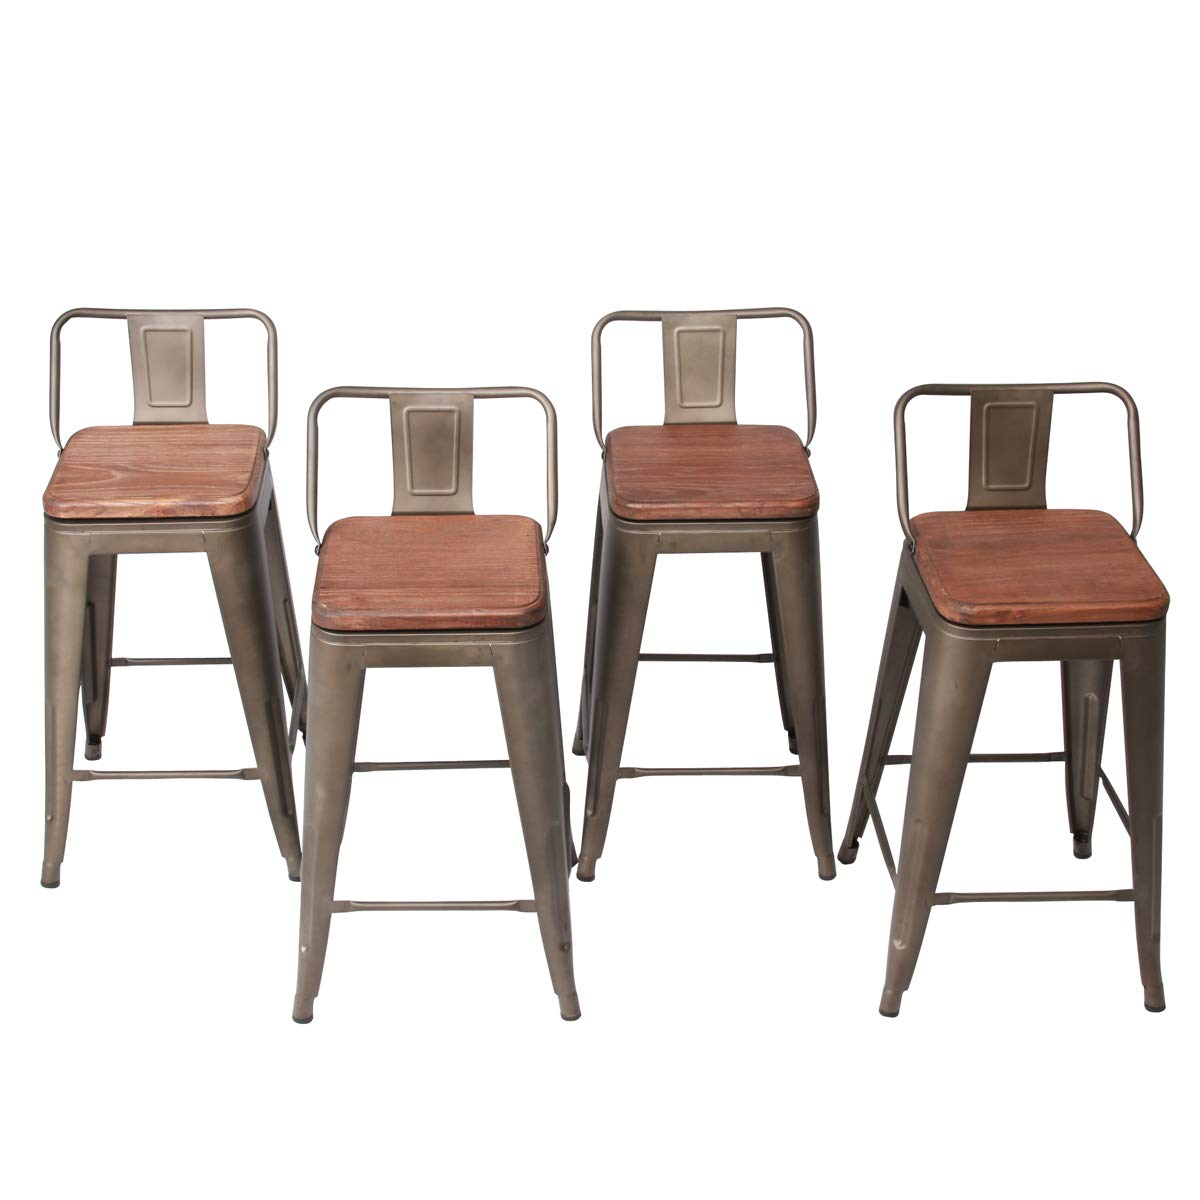 HAOBO Home Modern Industrial Metal Stool [Set of 4] for Indoor/Outdoor Dining Chair (26, Swivel Rusty) by HAOBO Home